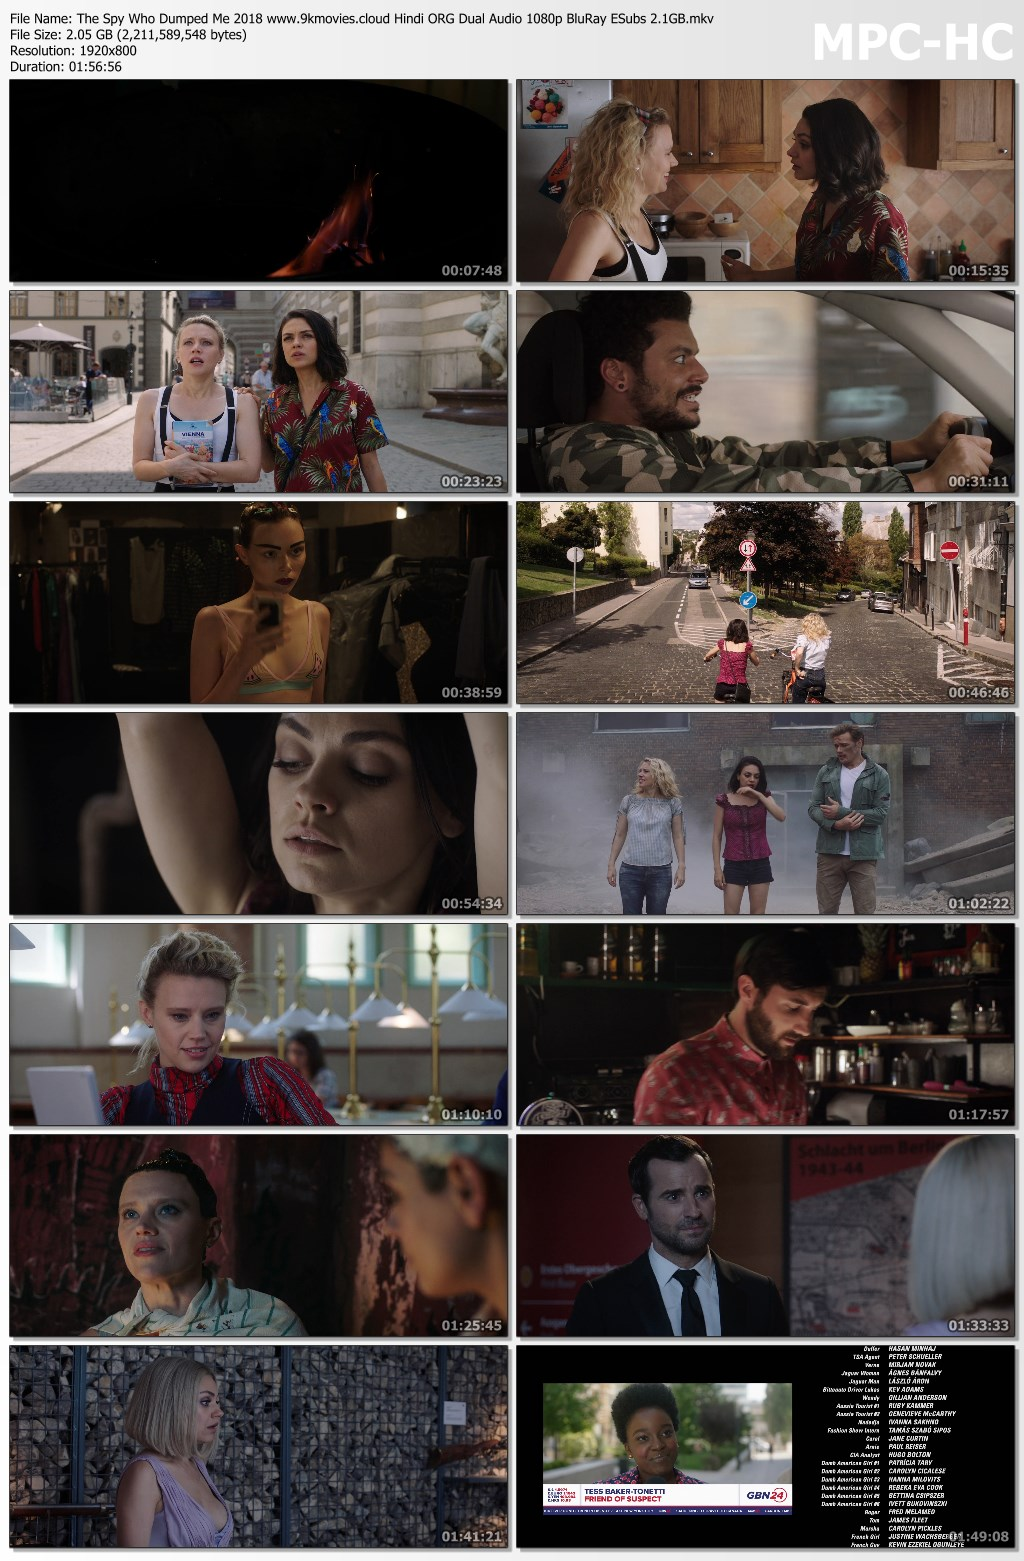 Download The Spy Who Dumped Me 2018 Hindi ORG Dual Audio 480p BluRay ESubs 400MB